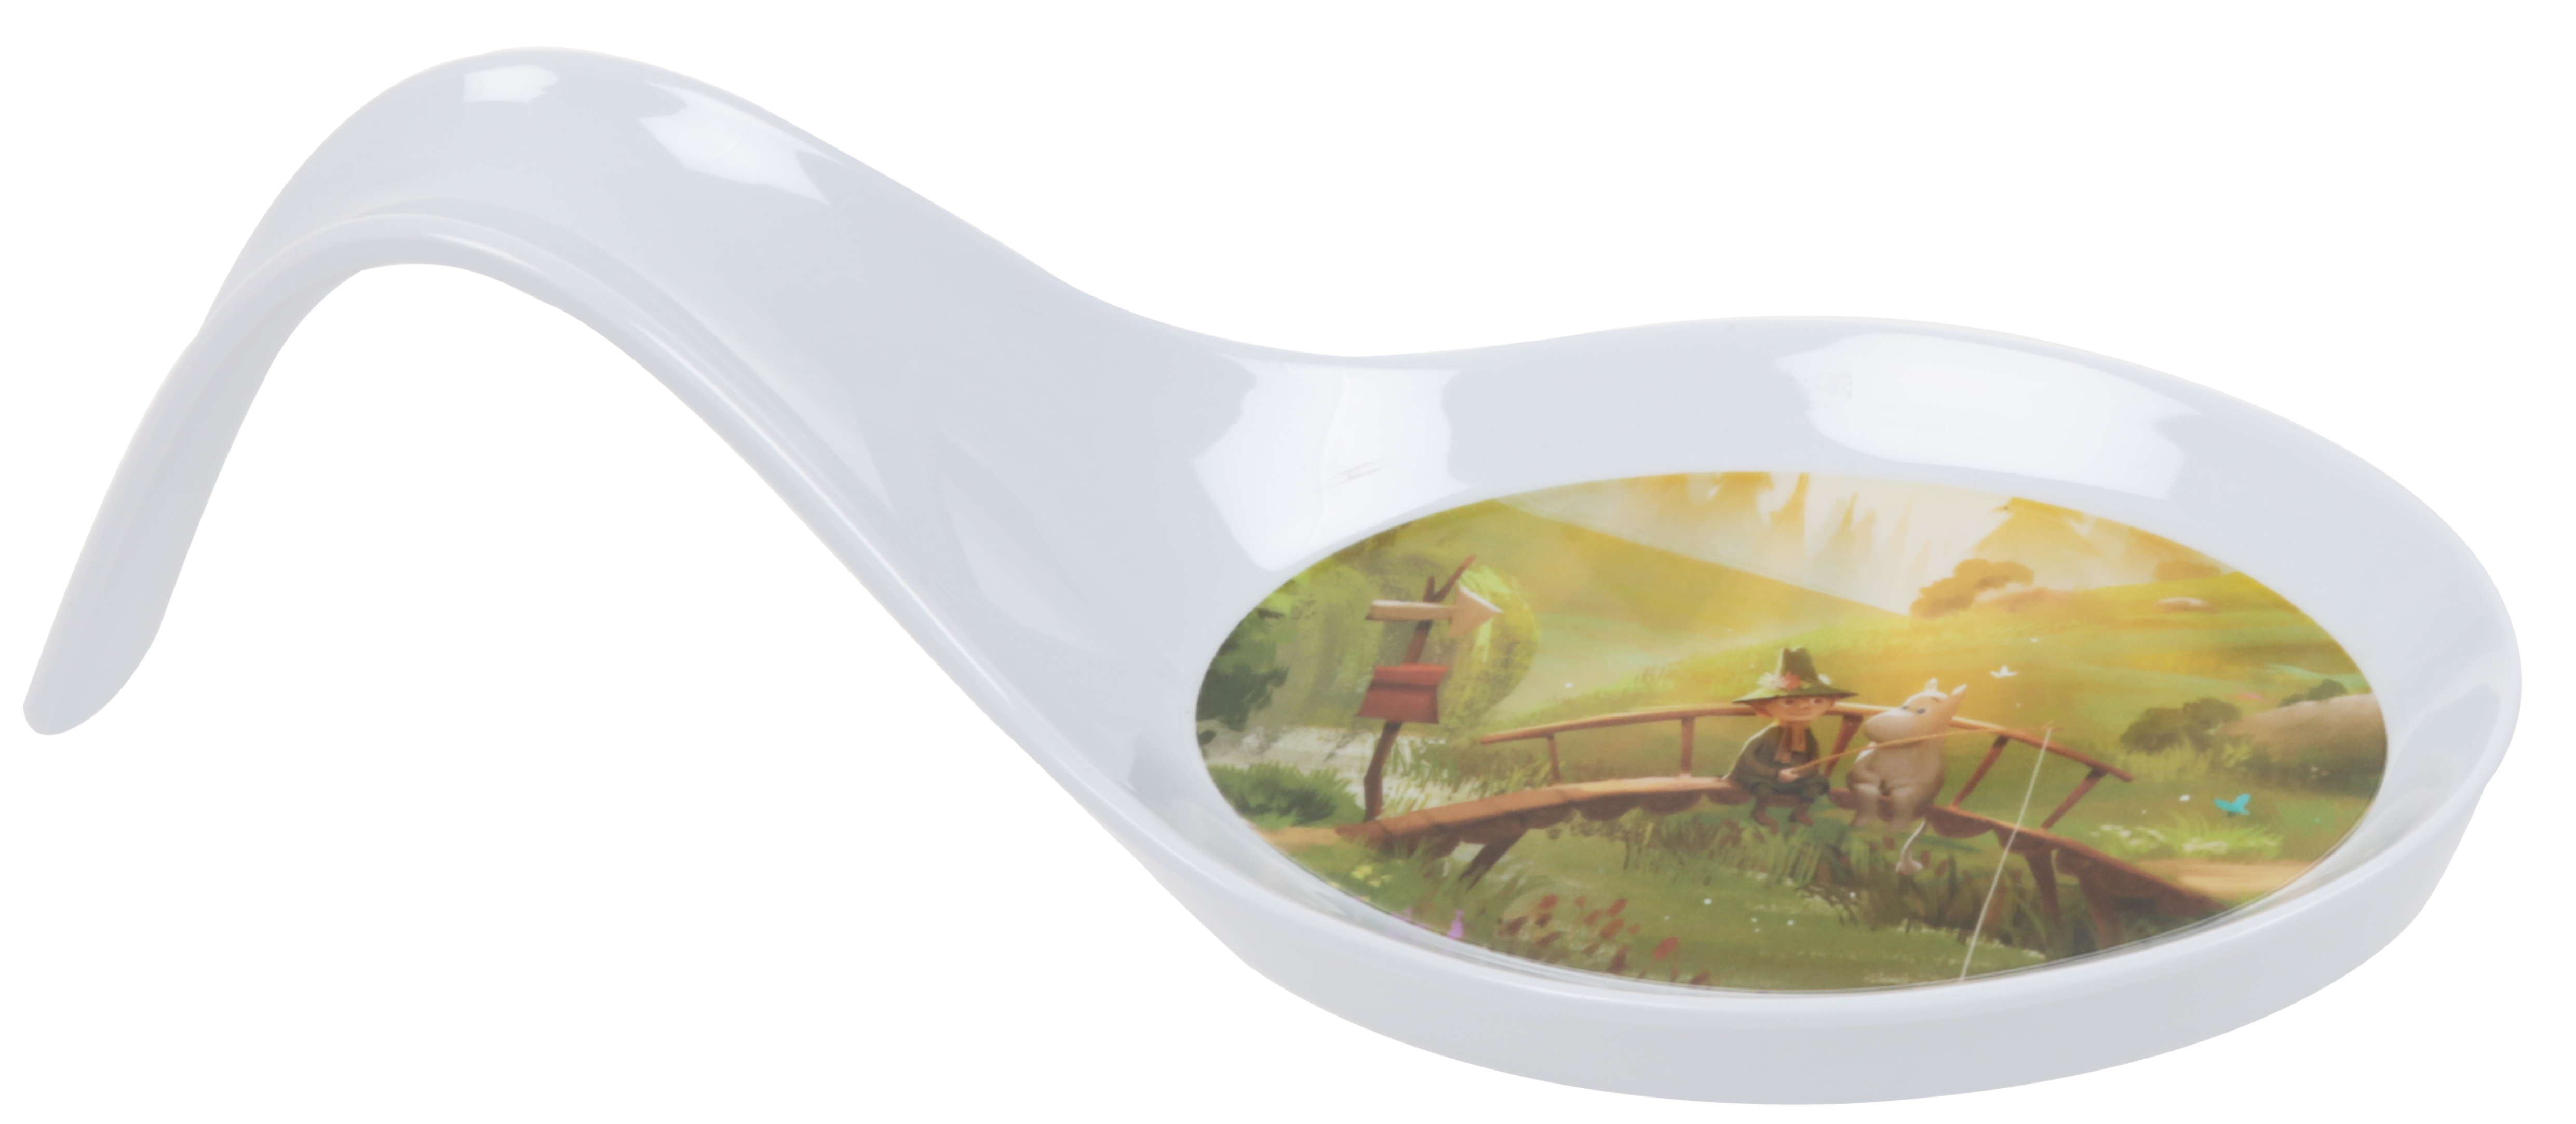 Martinex Moominvalley Animation Spoon Rest Fishing